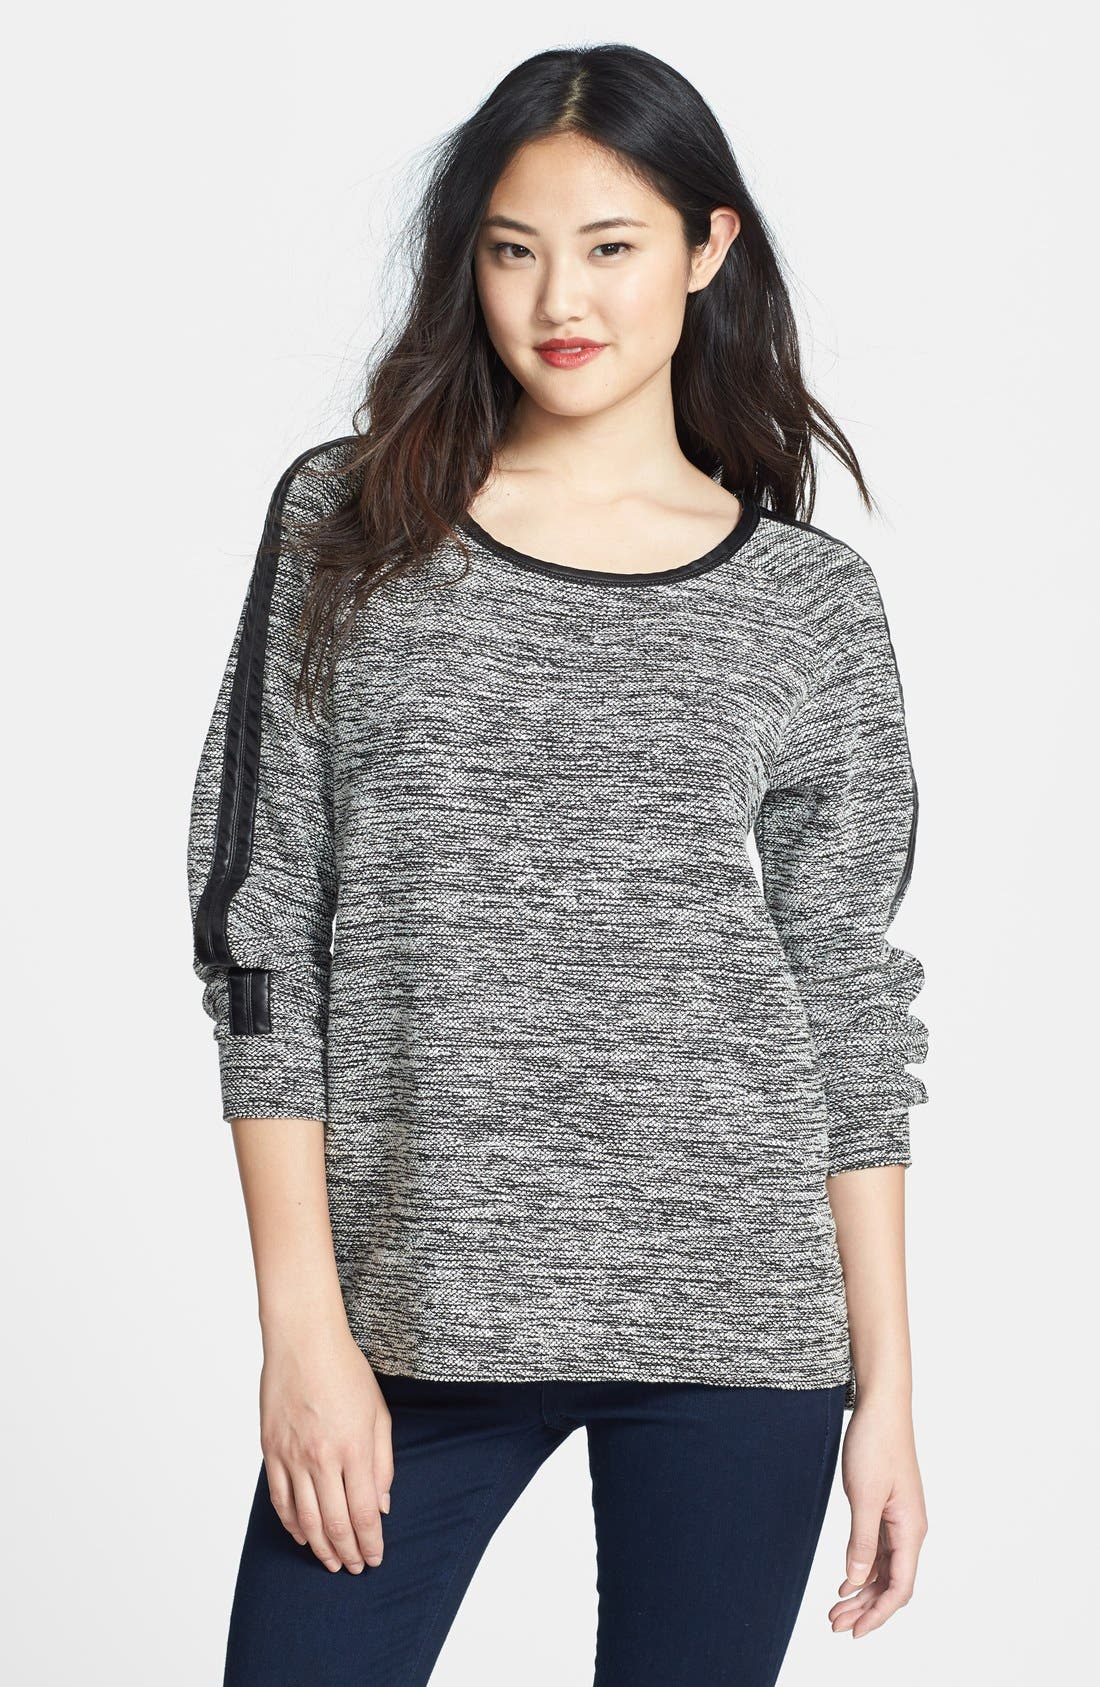 Alternate Image 1 Selected - Two by Vince Camuto Faux Leather Trim Sweatshirt